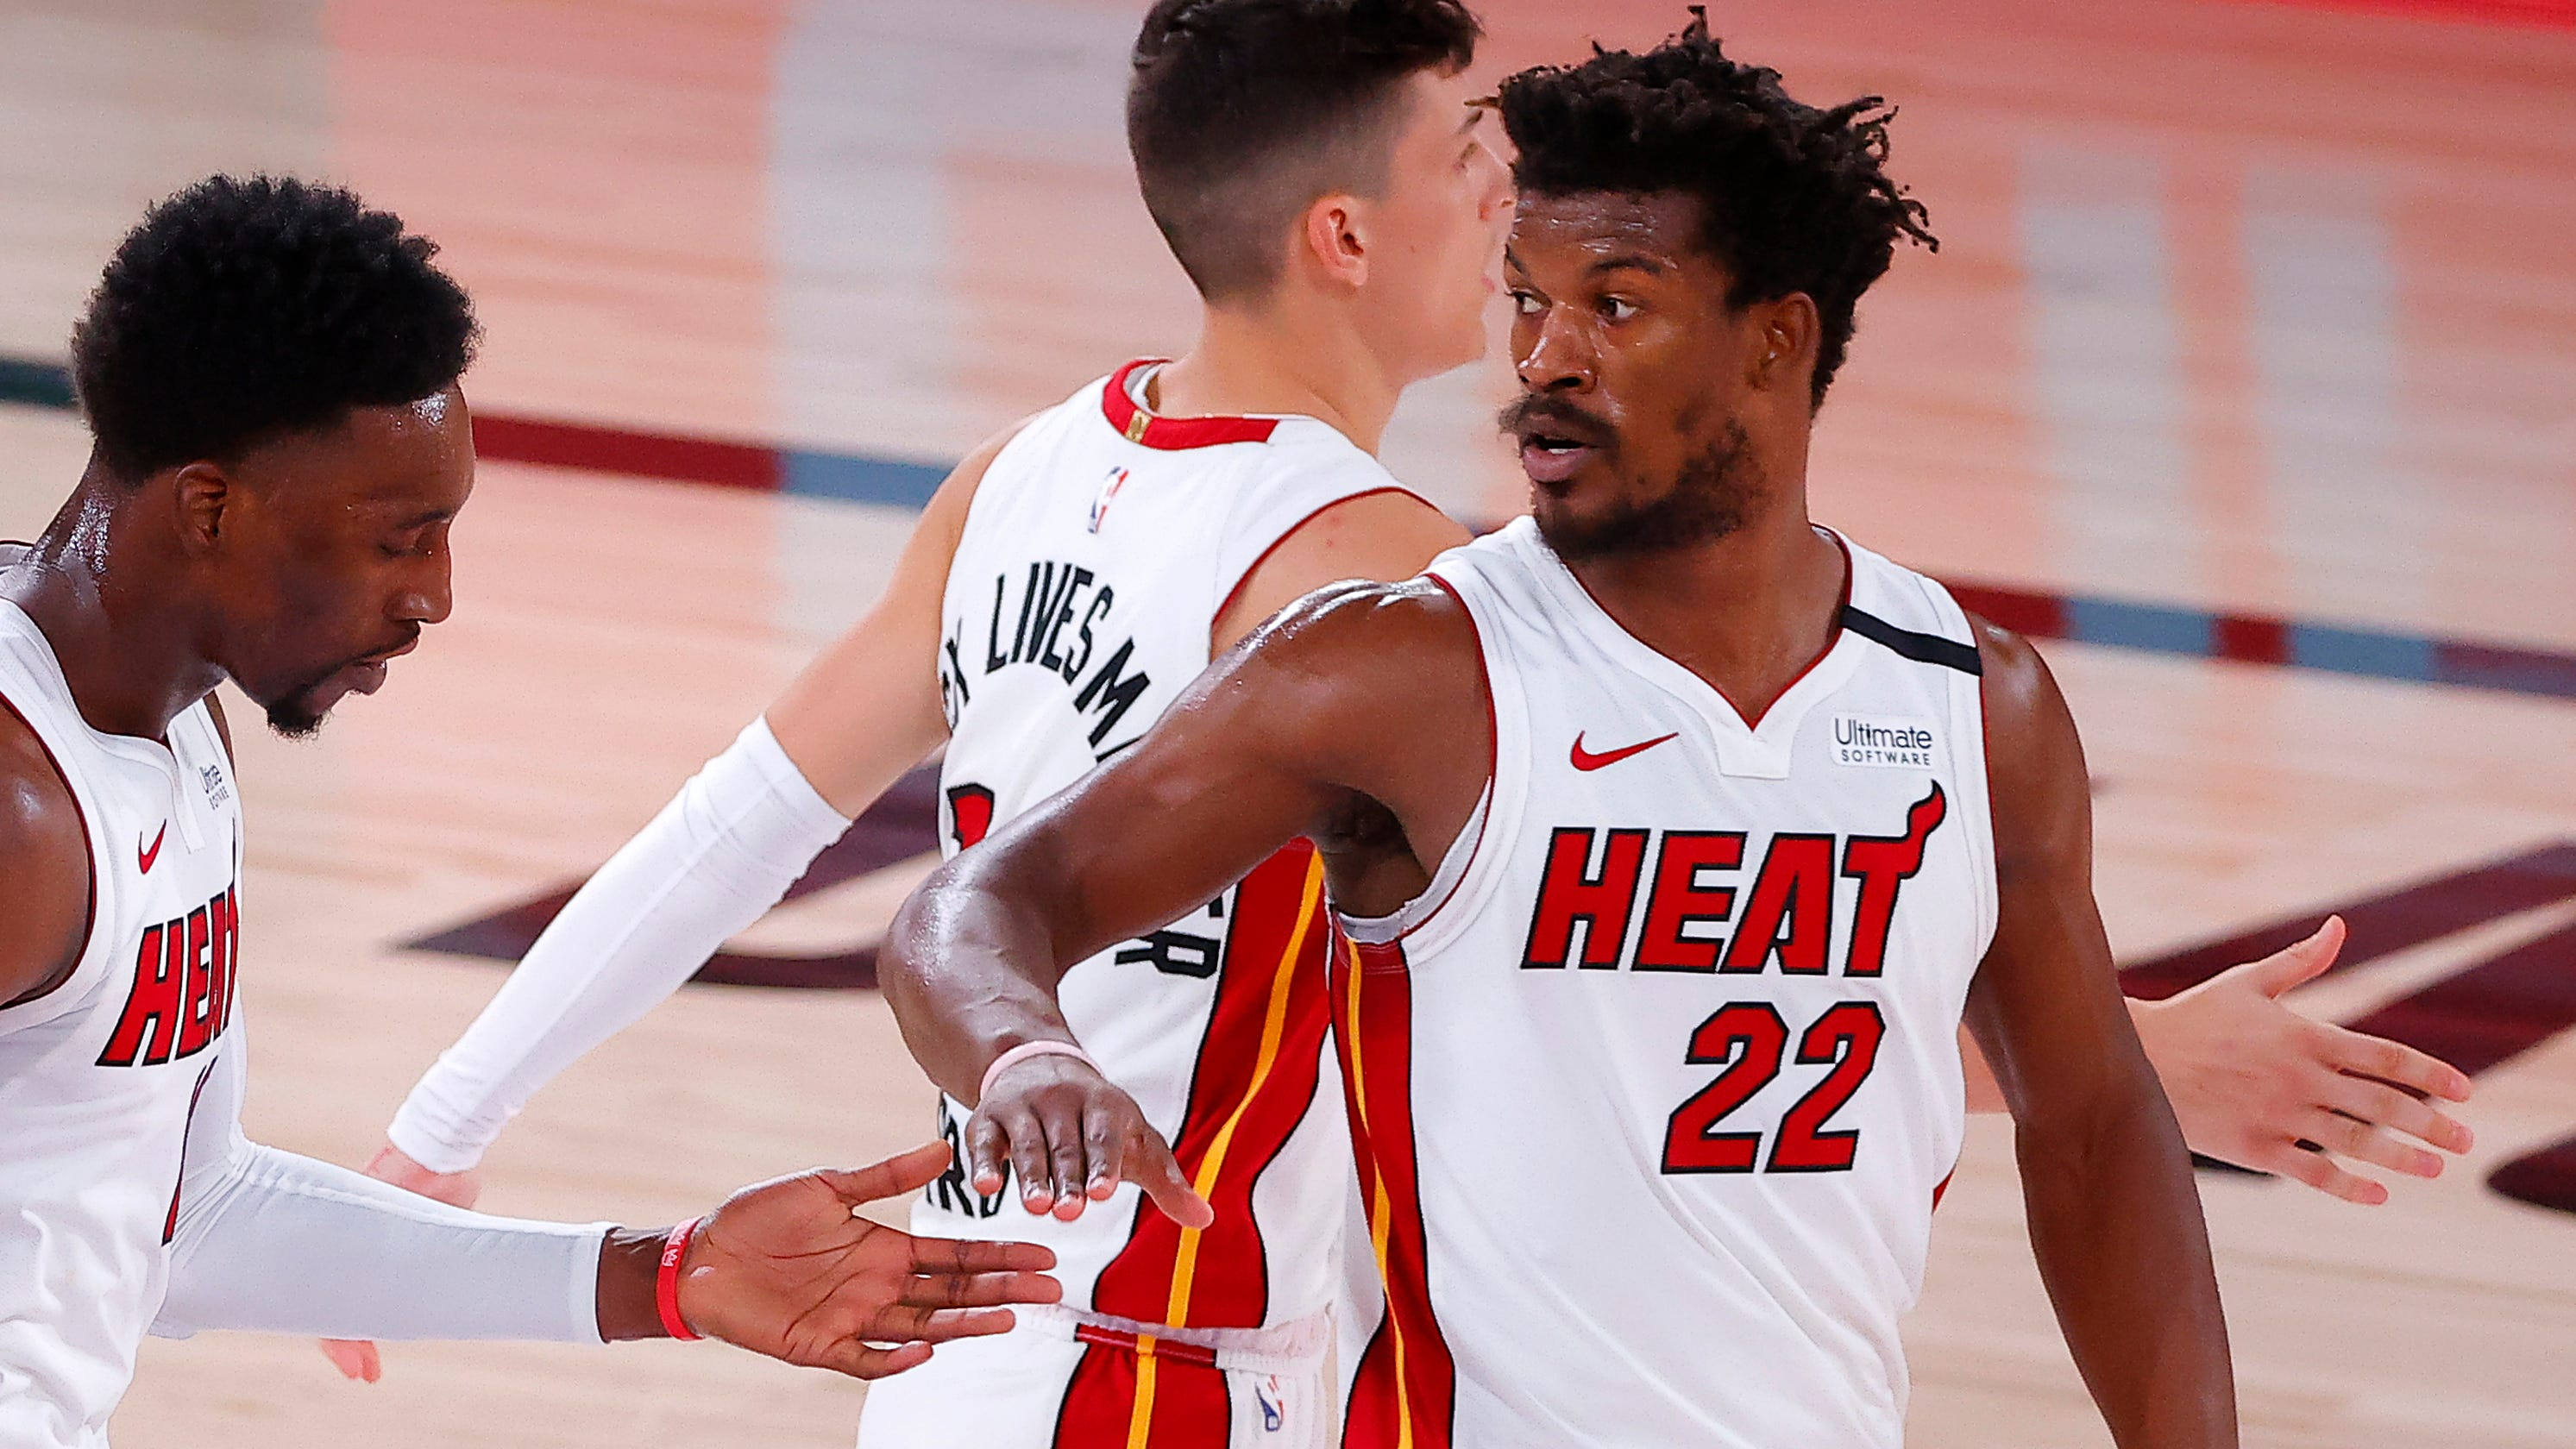 Opinion: How Heat star Jimmy Butler took over against Celtics in Game 2 without scoring